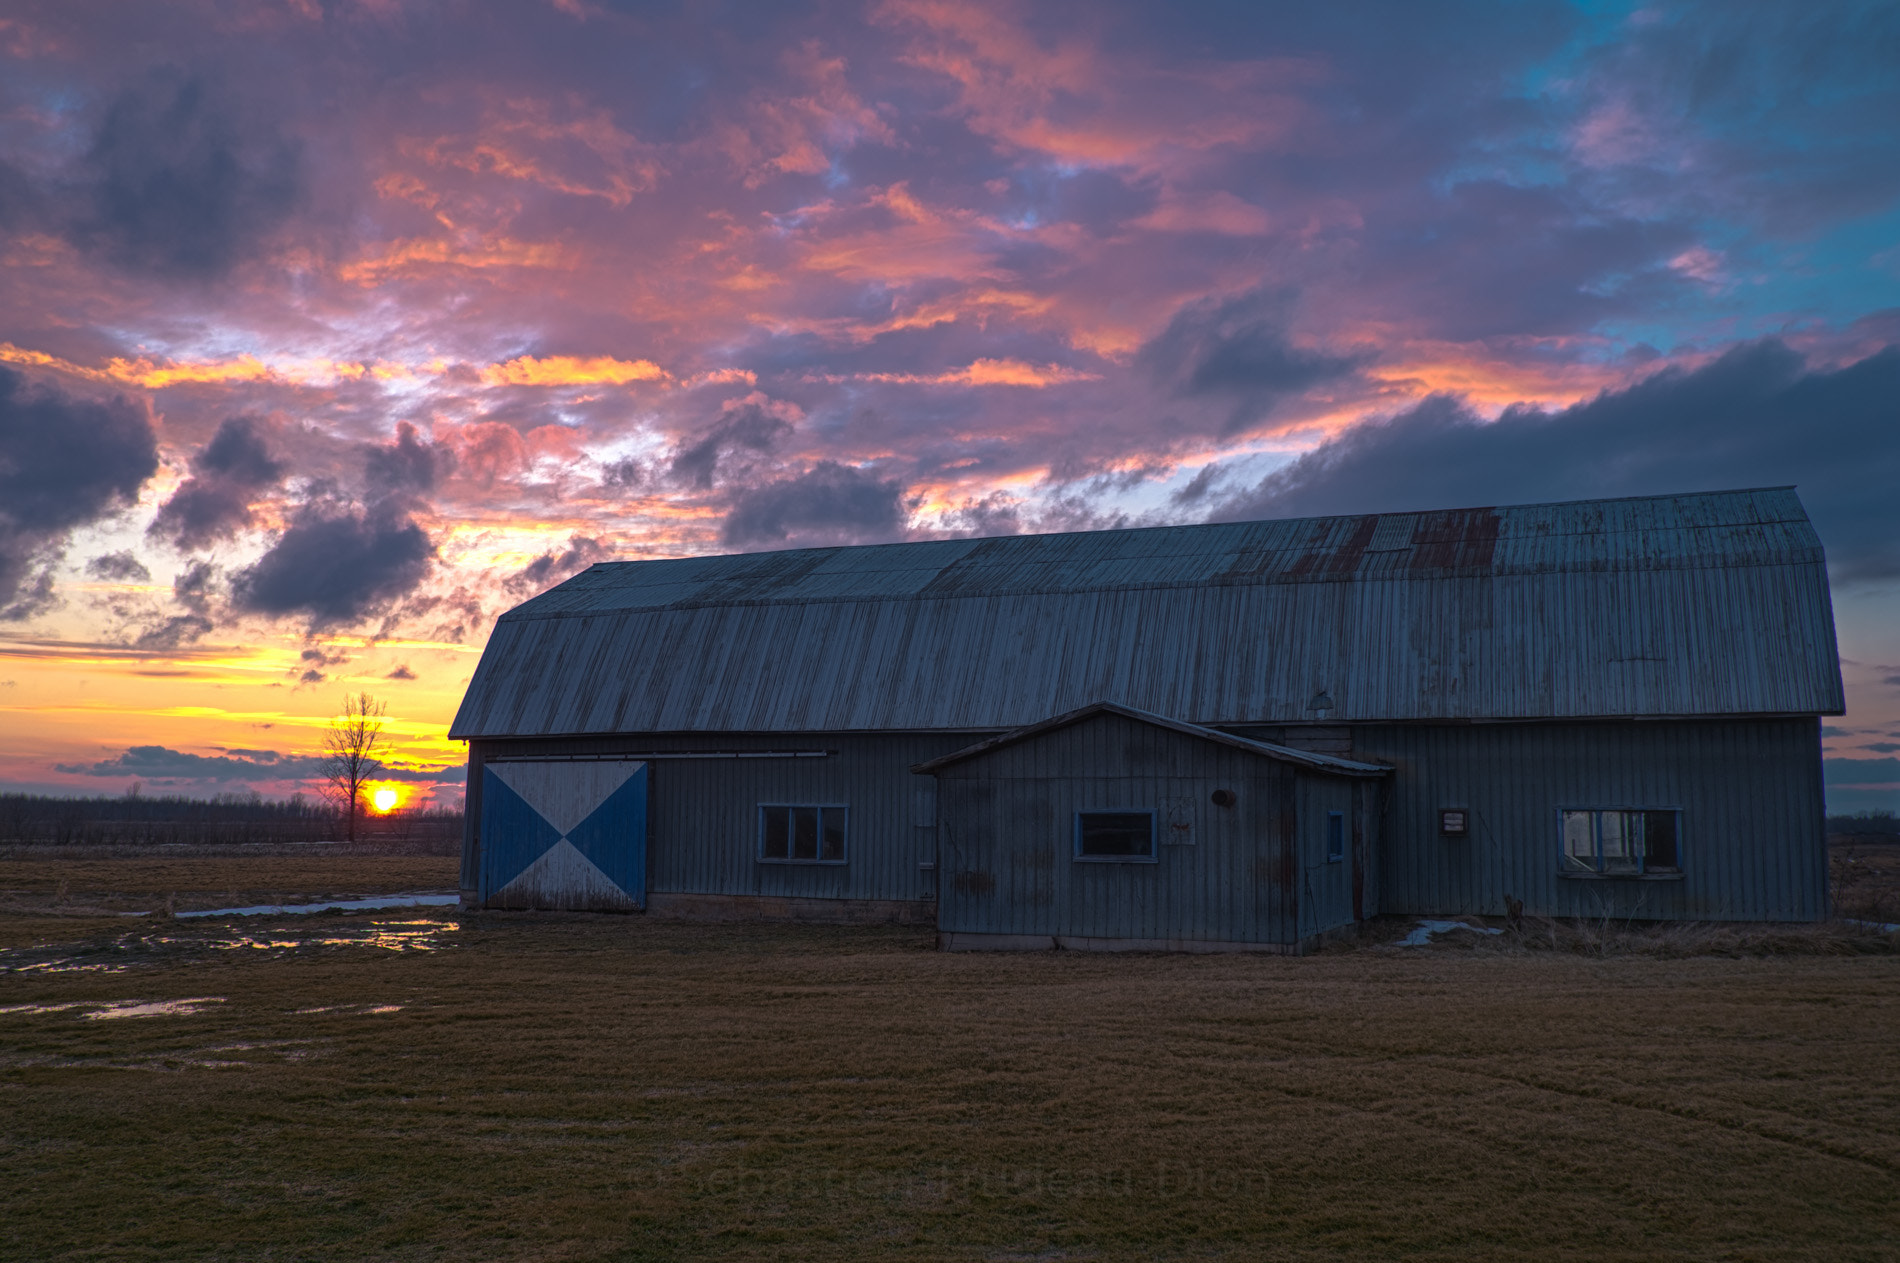 Photograph A barn in the sunset by Sébastien Trudeau-Dion on 500px